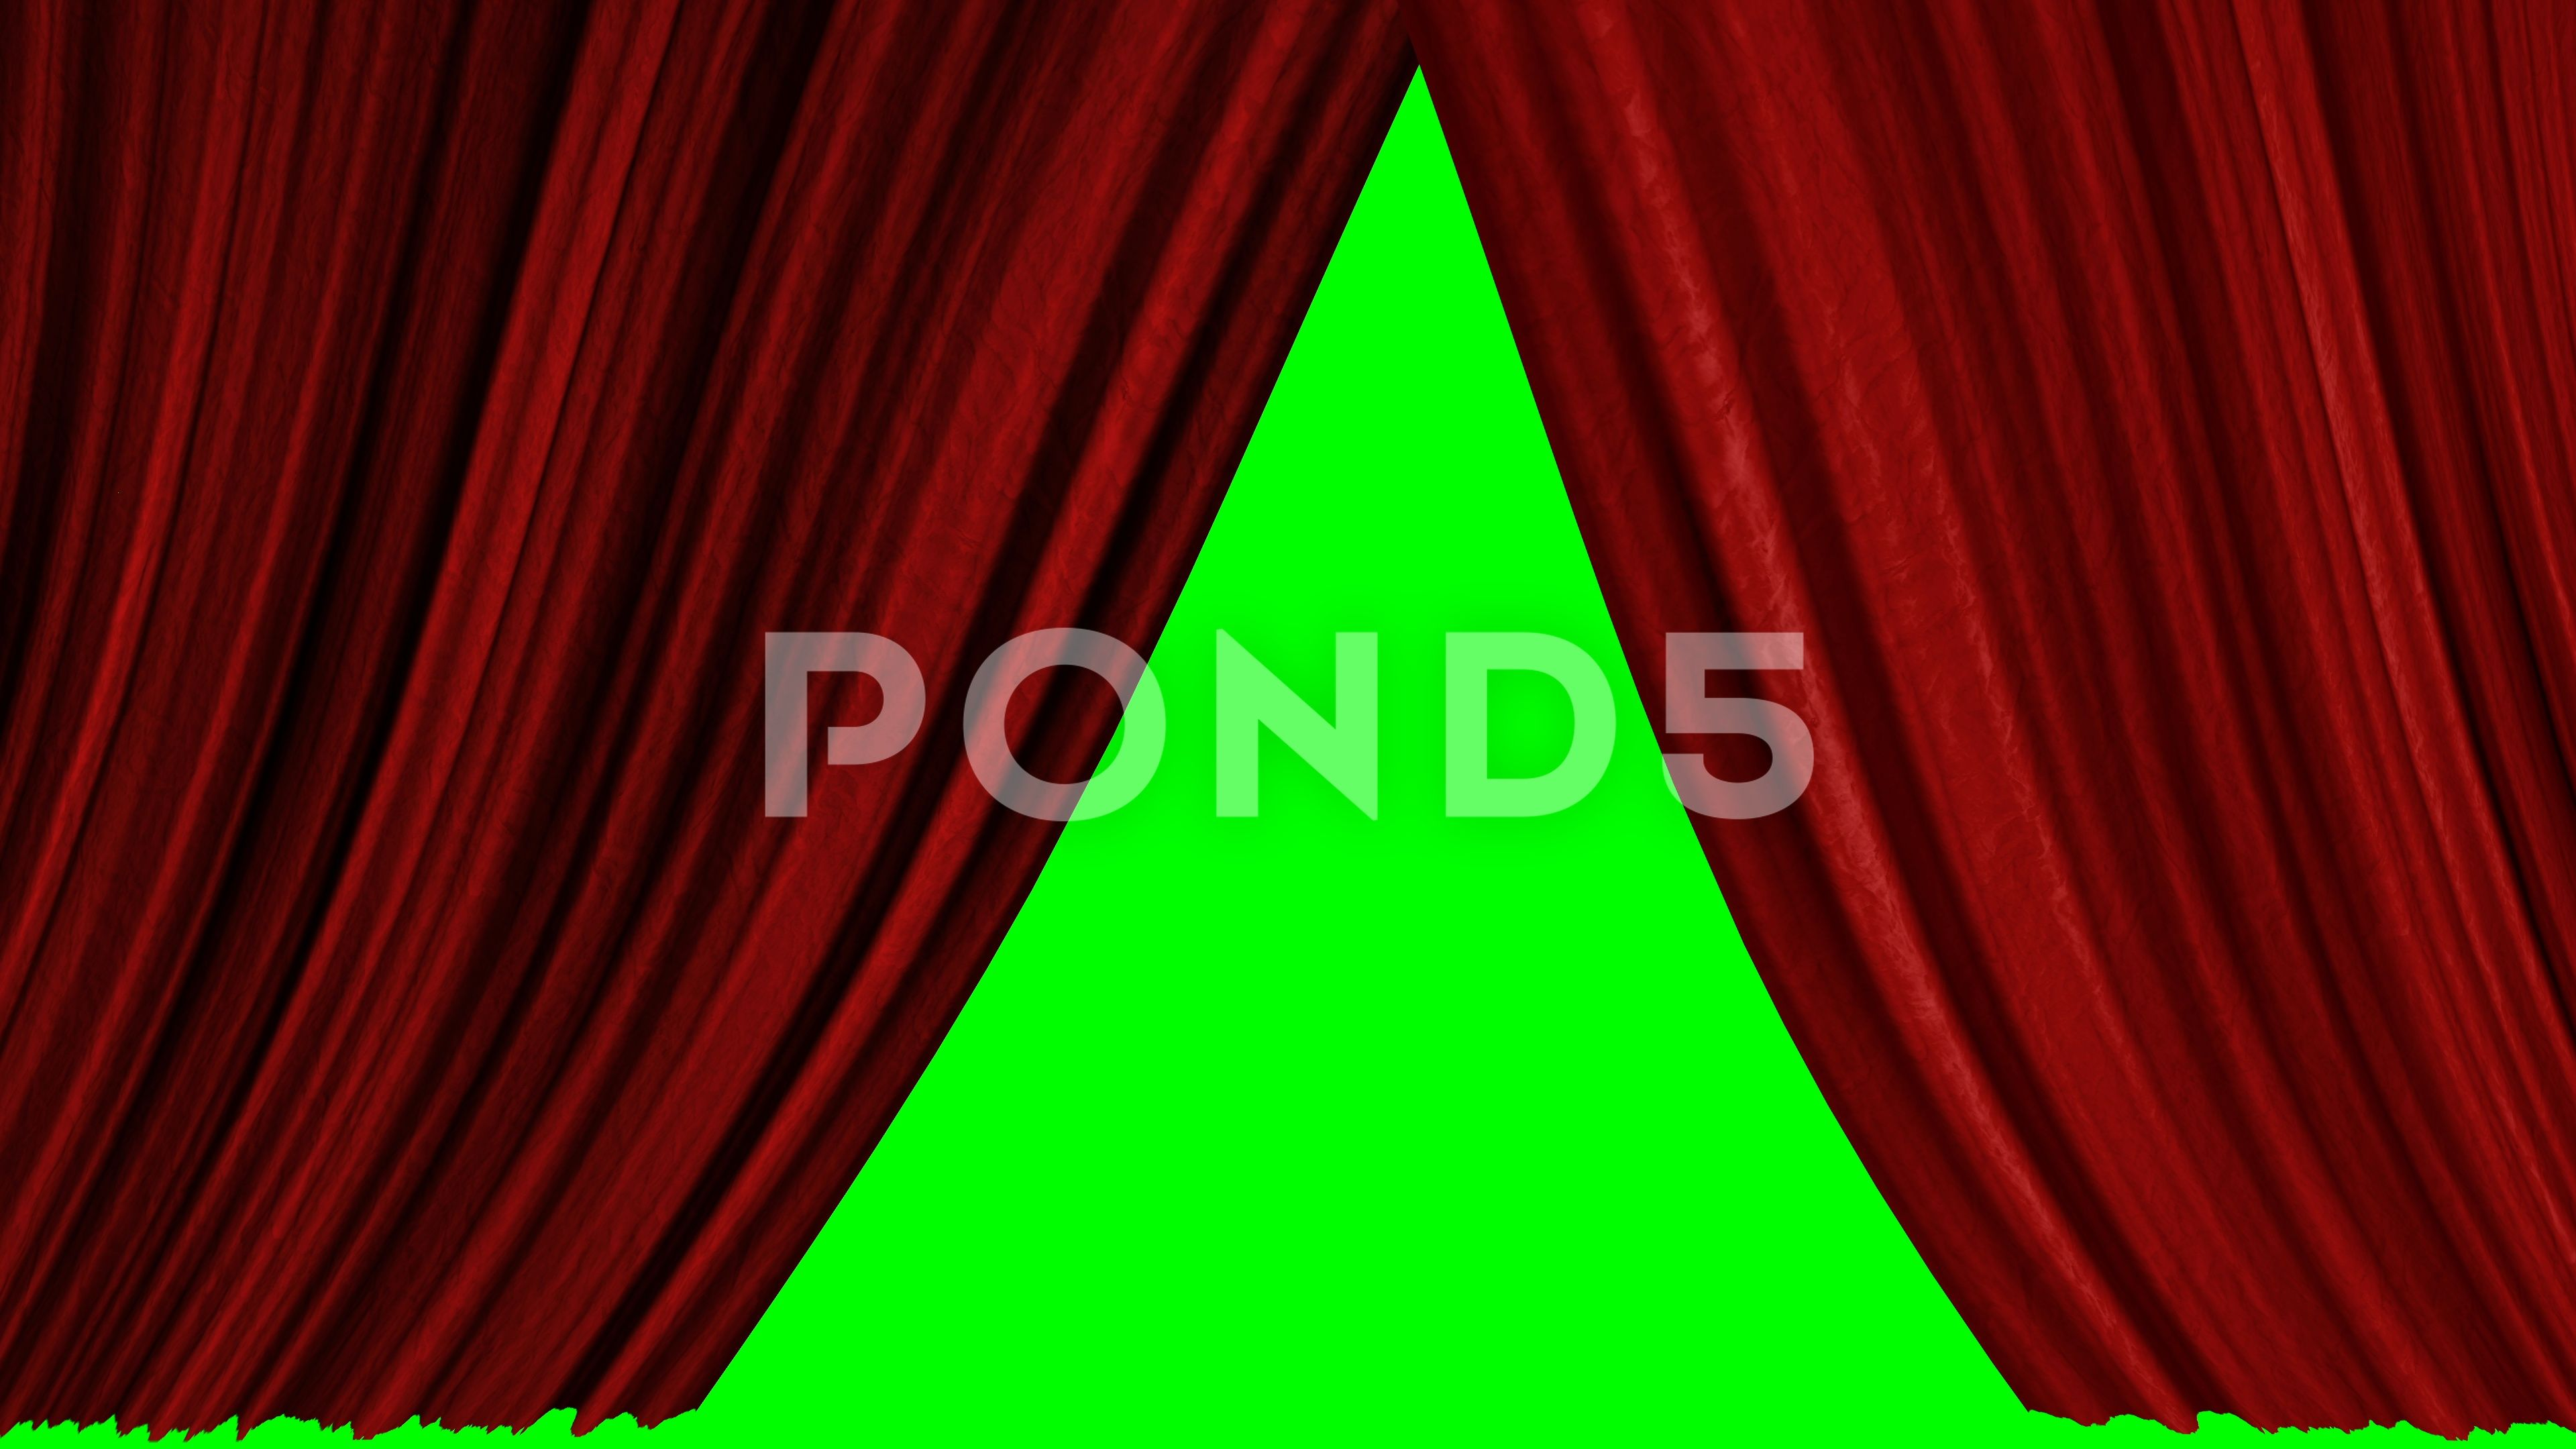 Five Options For Opening Texture Curtains With A Green Screen